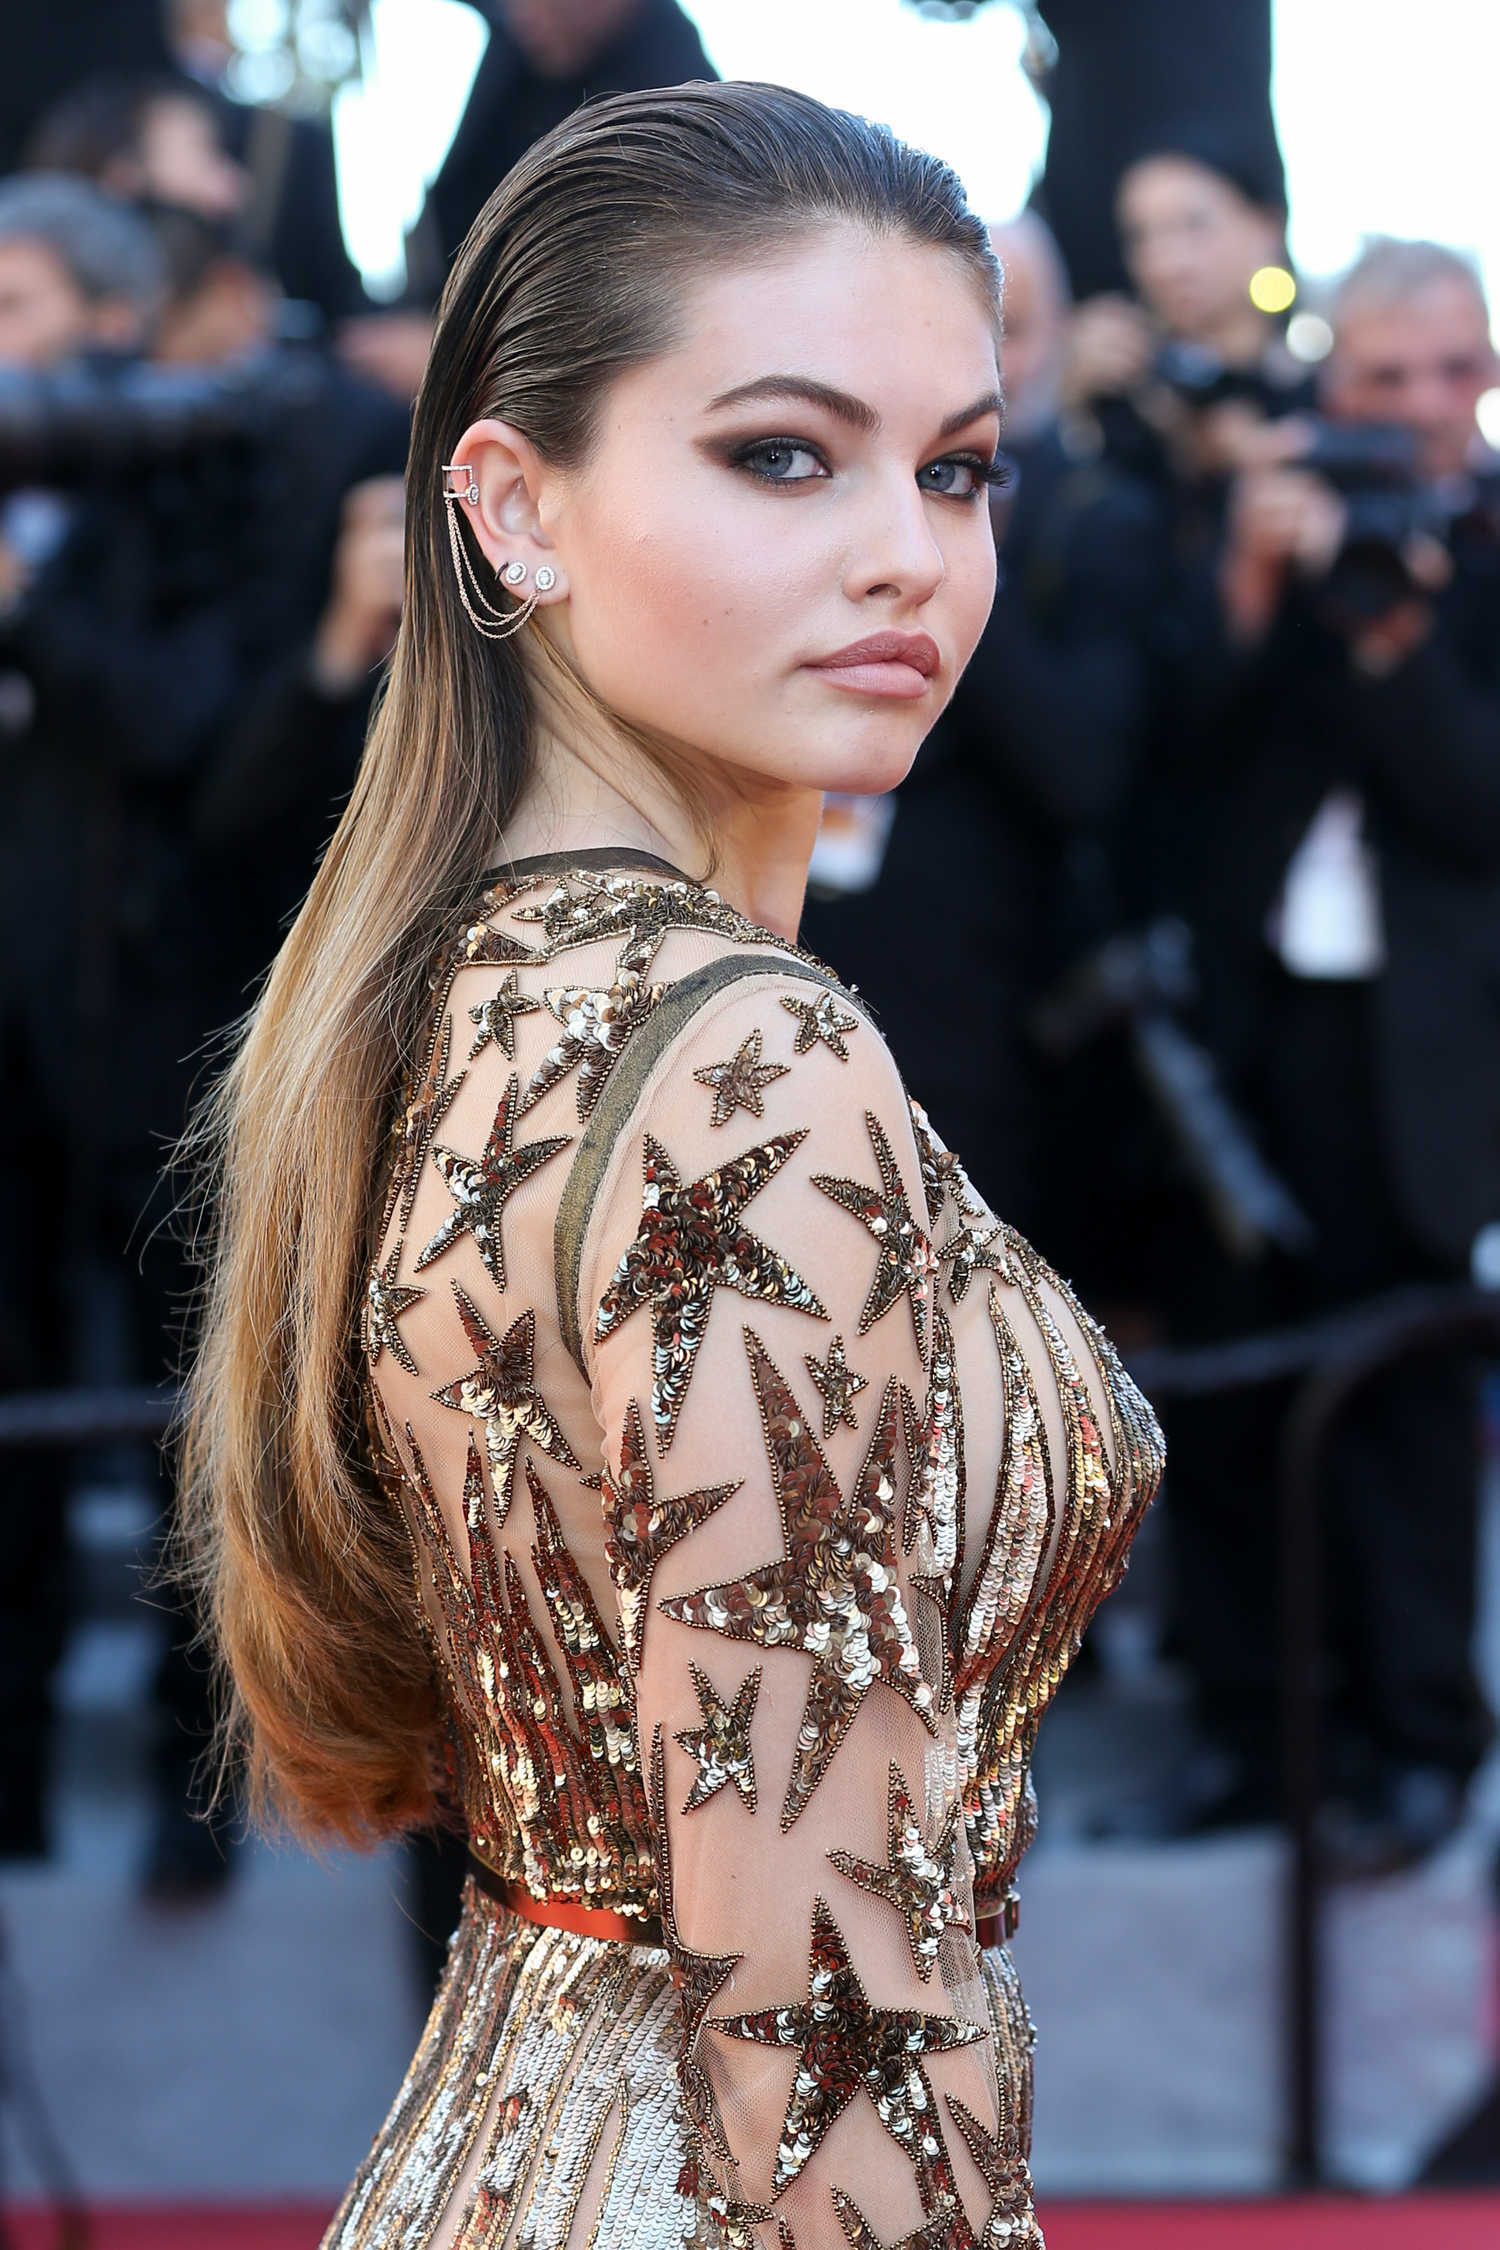 thylane blondeau wikipedia